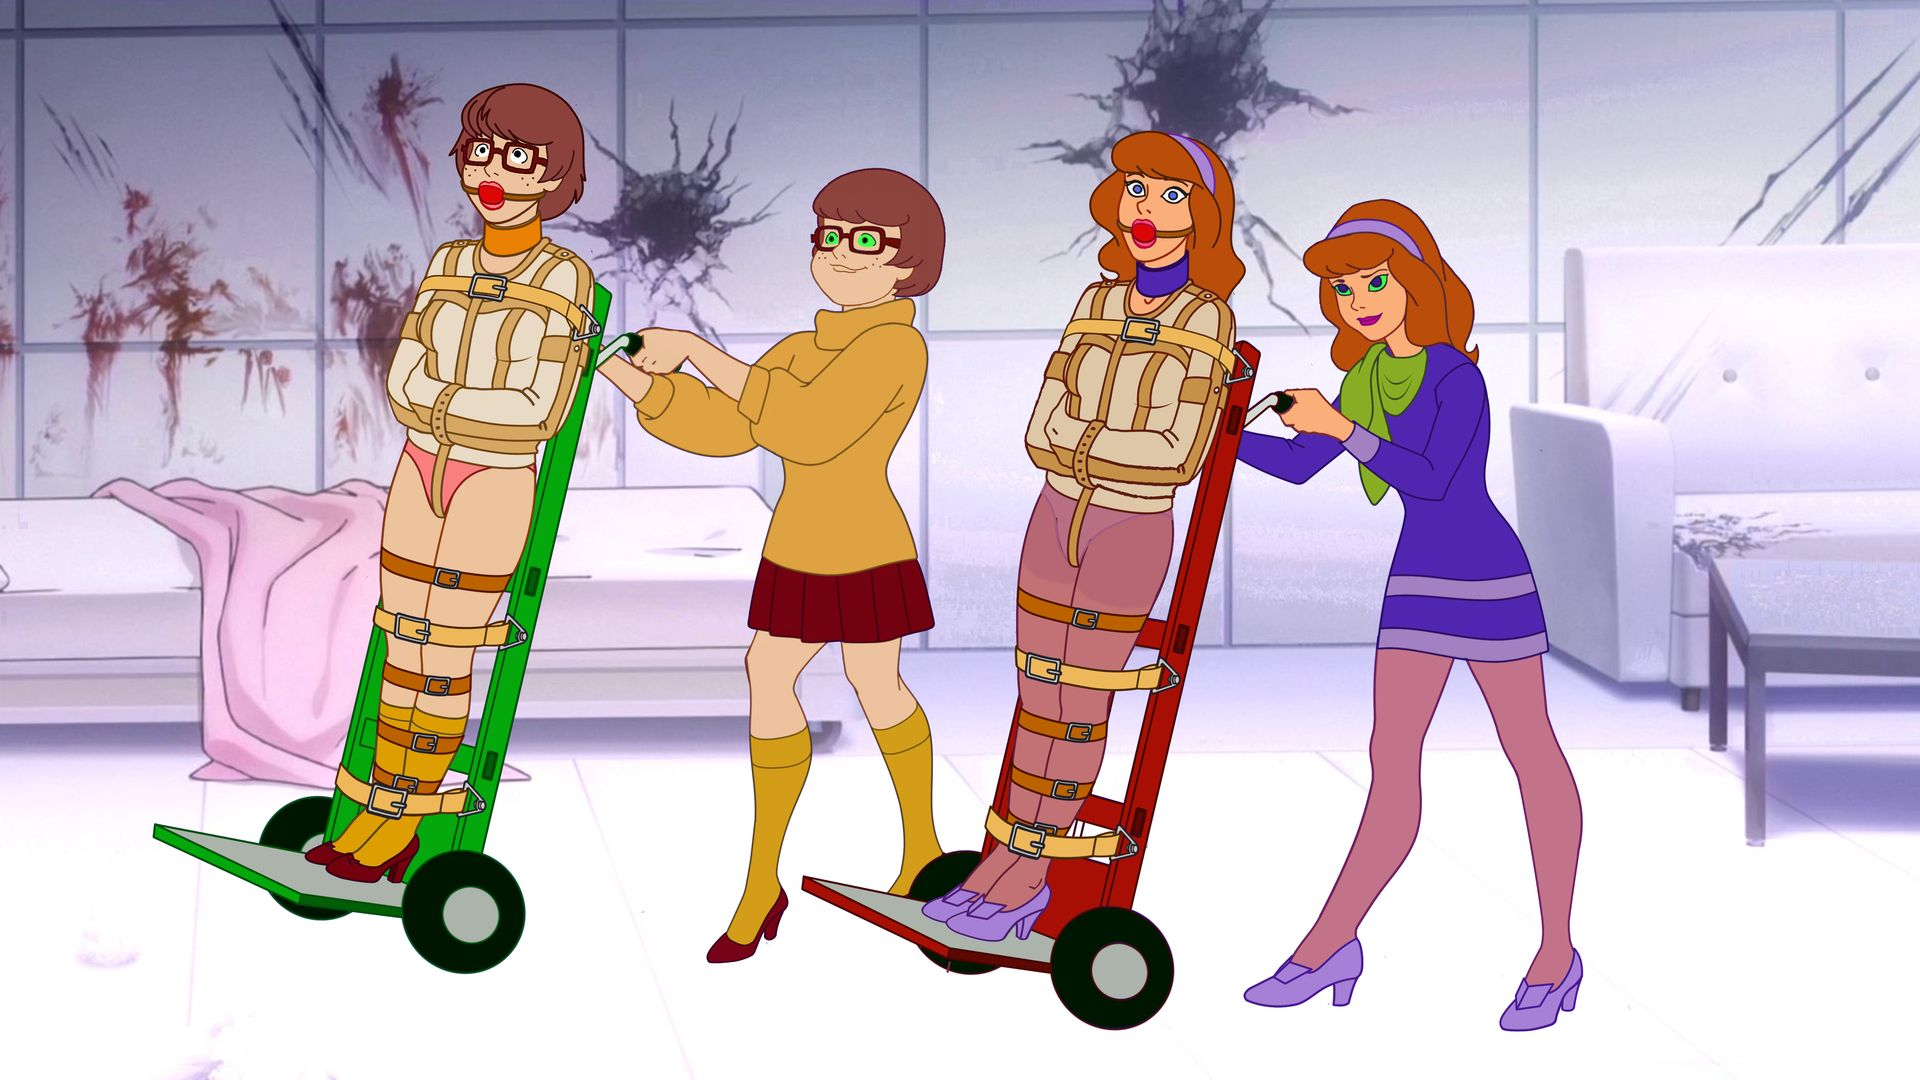 Daphne and Velma in Hands of Evil Doubles by VictorZulu